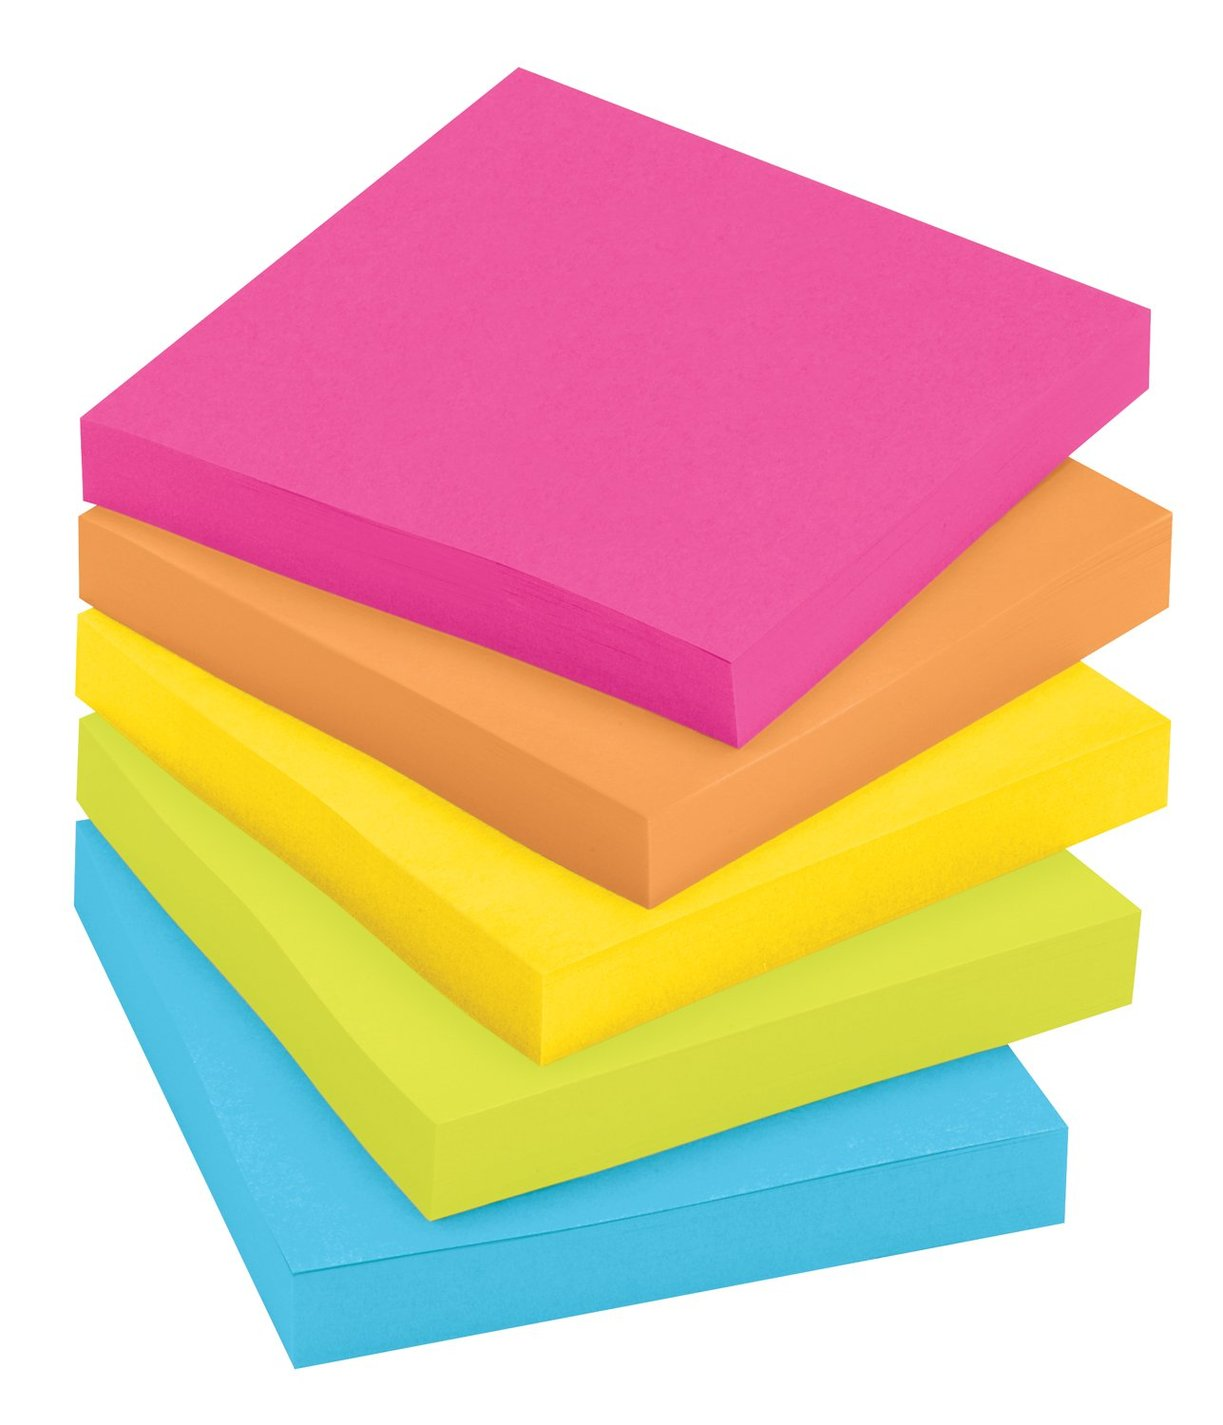 Post-its clipart - Clipground - photo#44